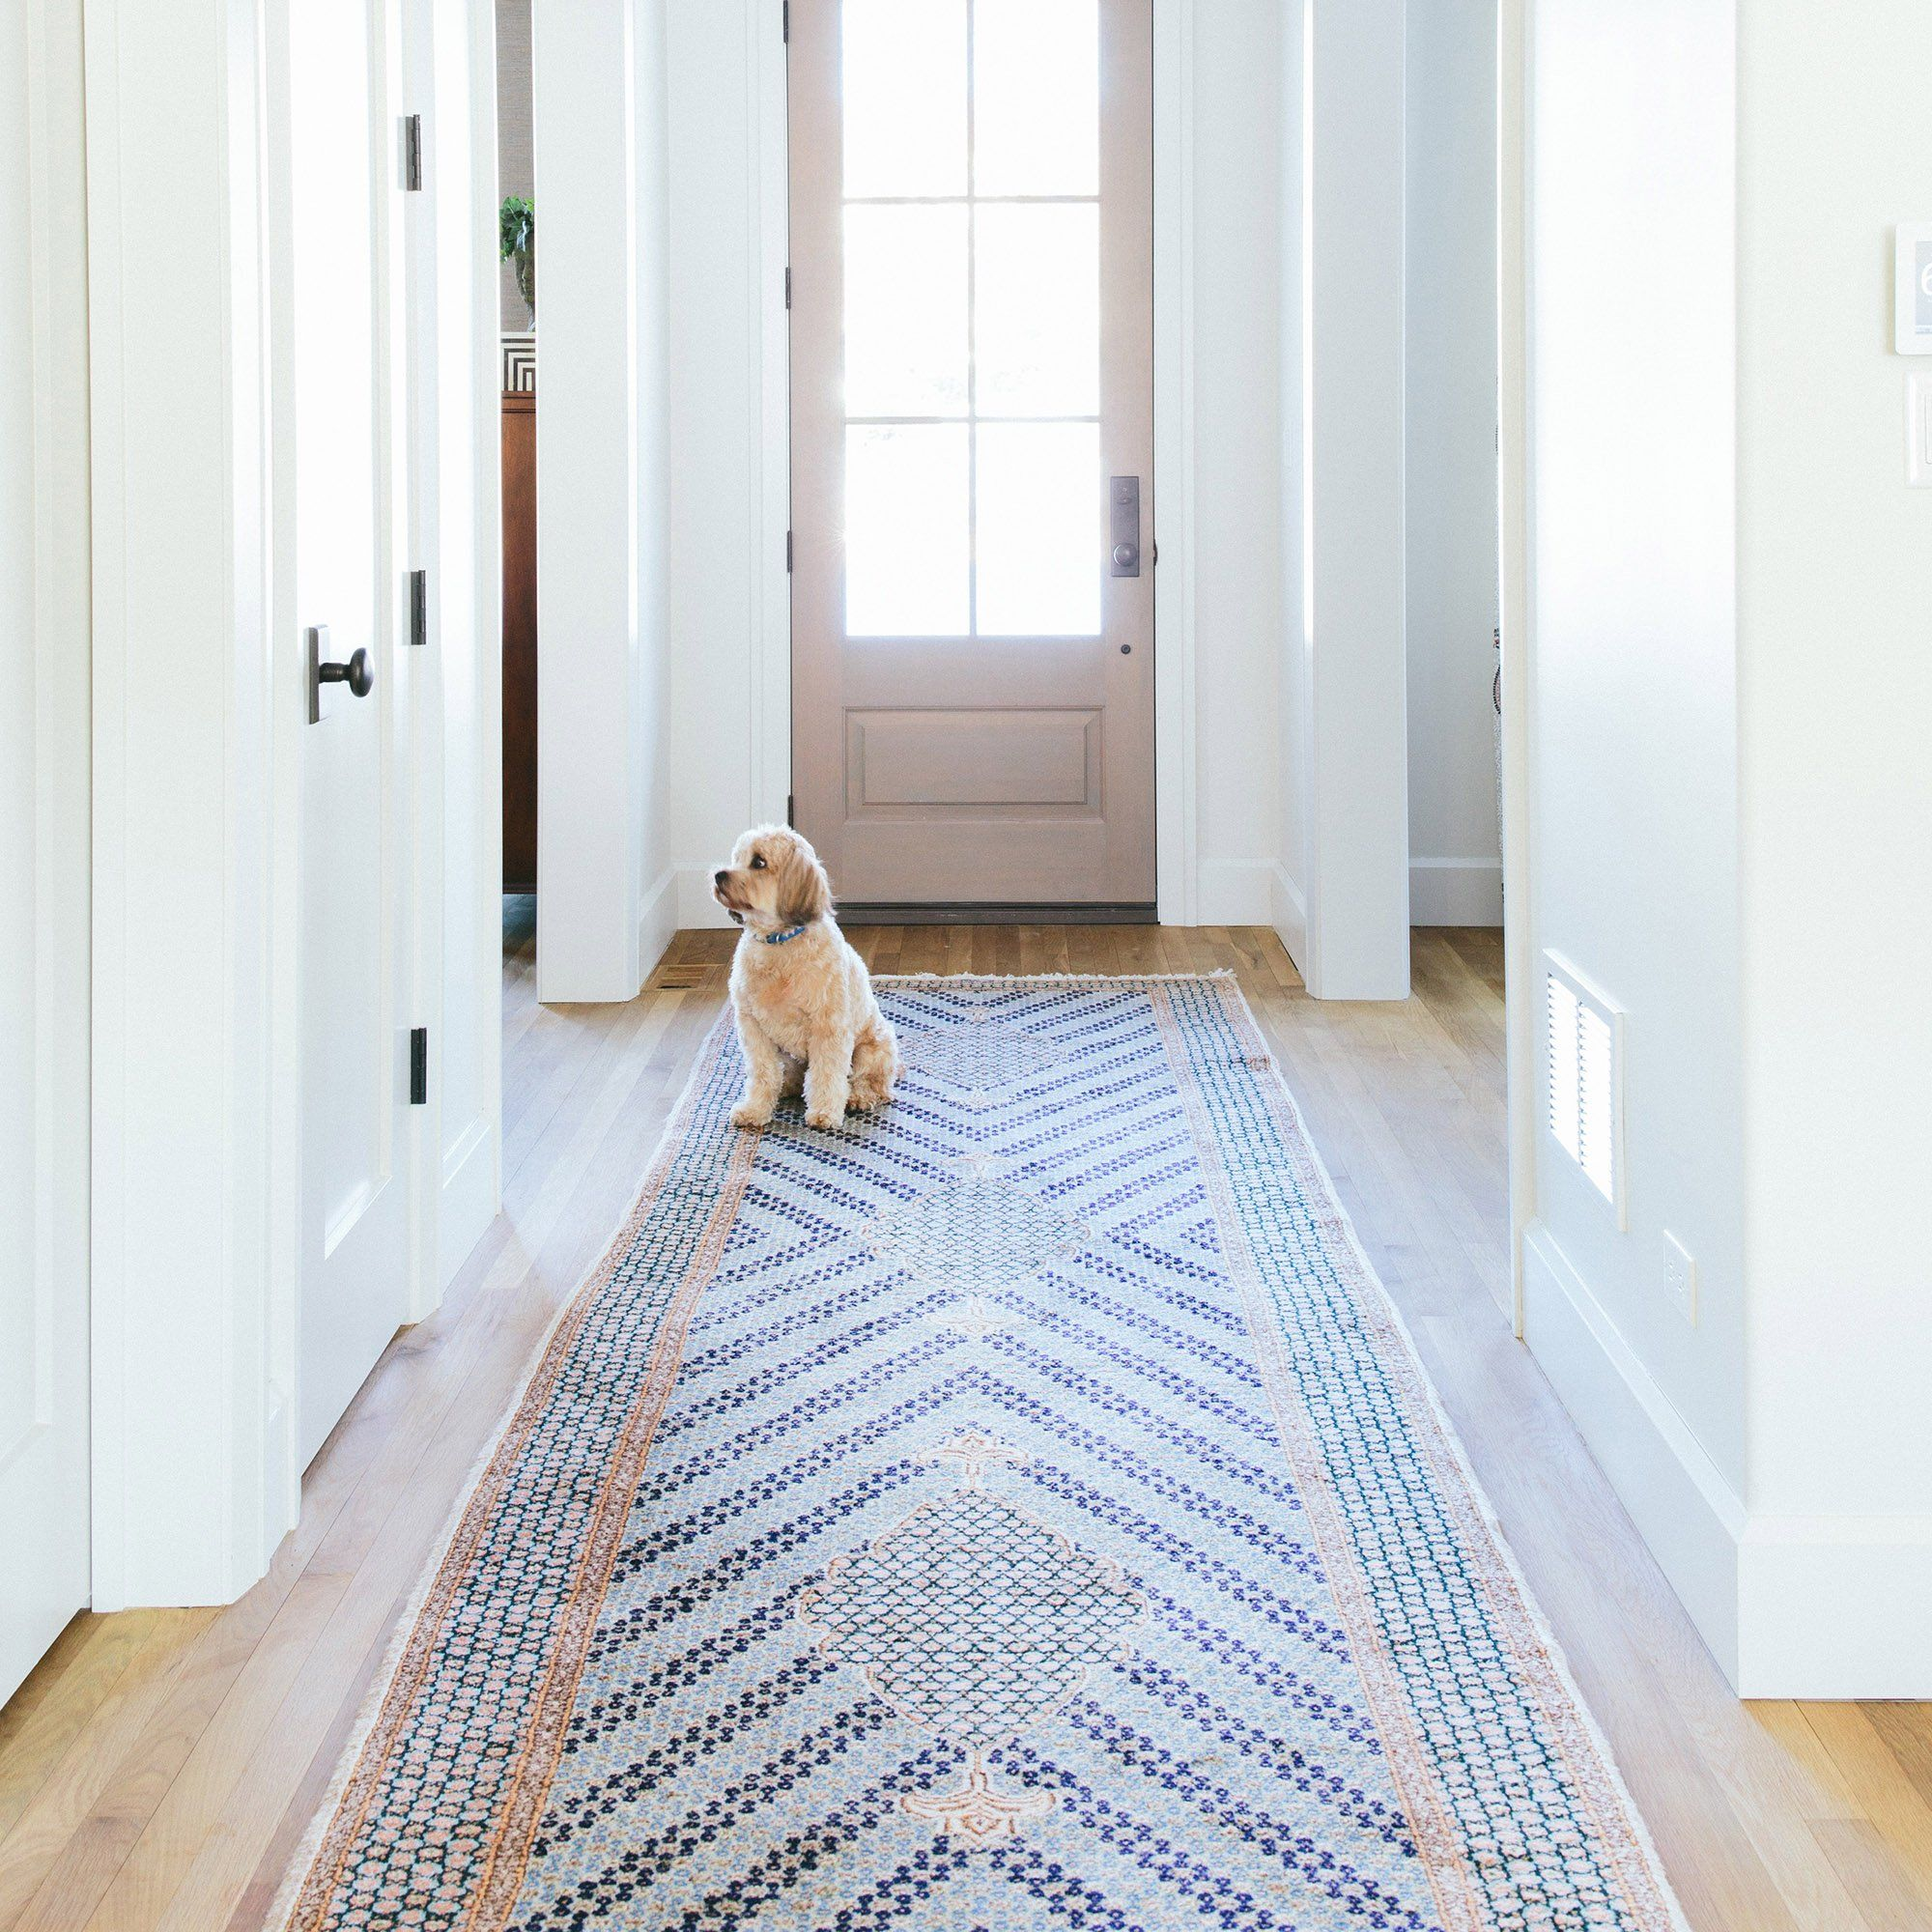 Non Slip Rug Pad Rubber Non Skid Gripper For Runners On Hard Surfaces And Wood Floors 2 X 8 Trim To F Runner Rug Entryway Rug Runner Hallway Hall Runner Rugs